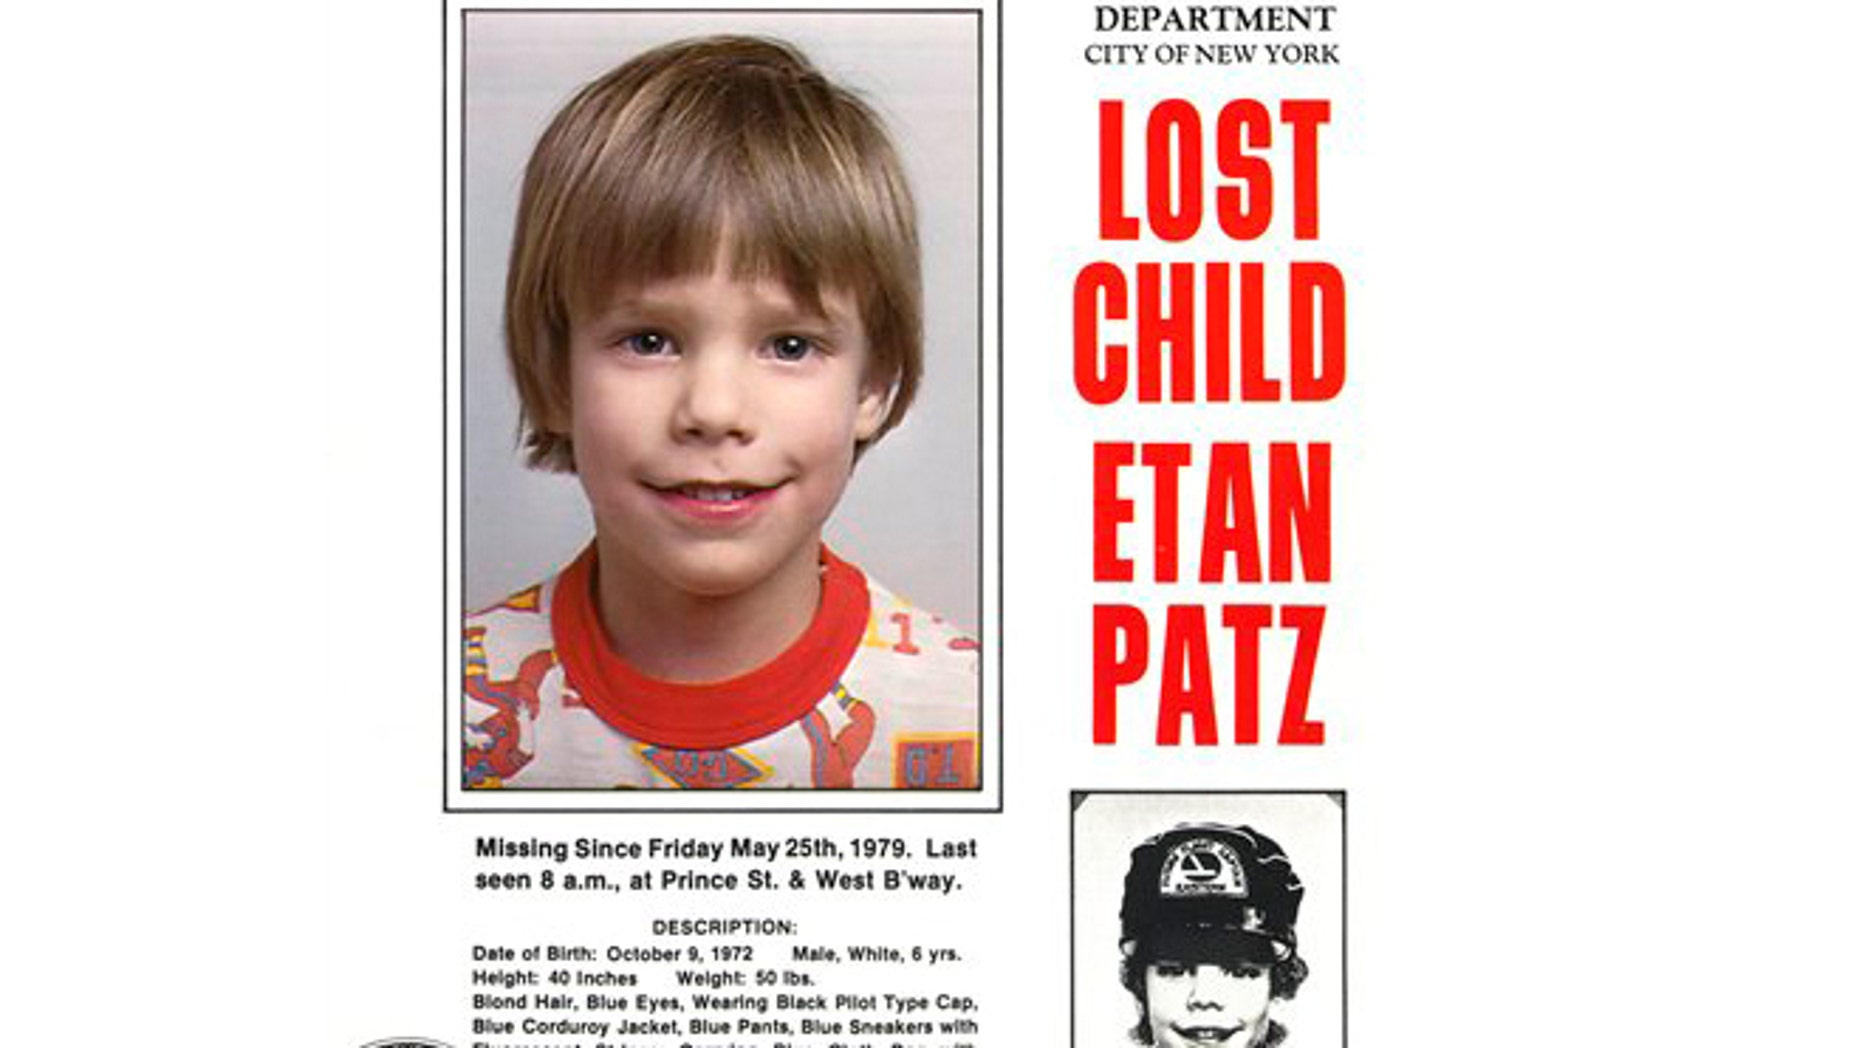 This undated file image provided by Stanley K. Patz shows a flyer distributed by the New York Police Department of Patz's son Etan who disappeared in New York on May 25, 1979.